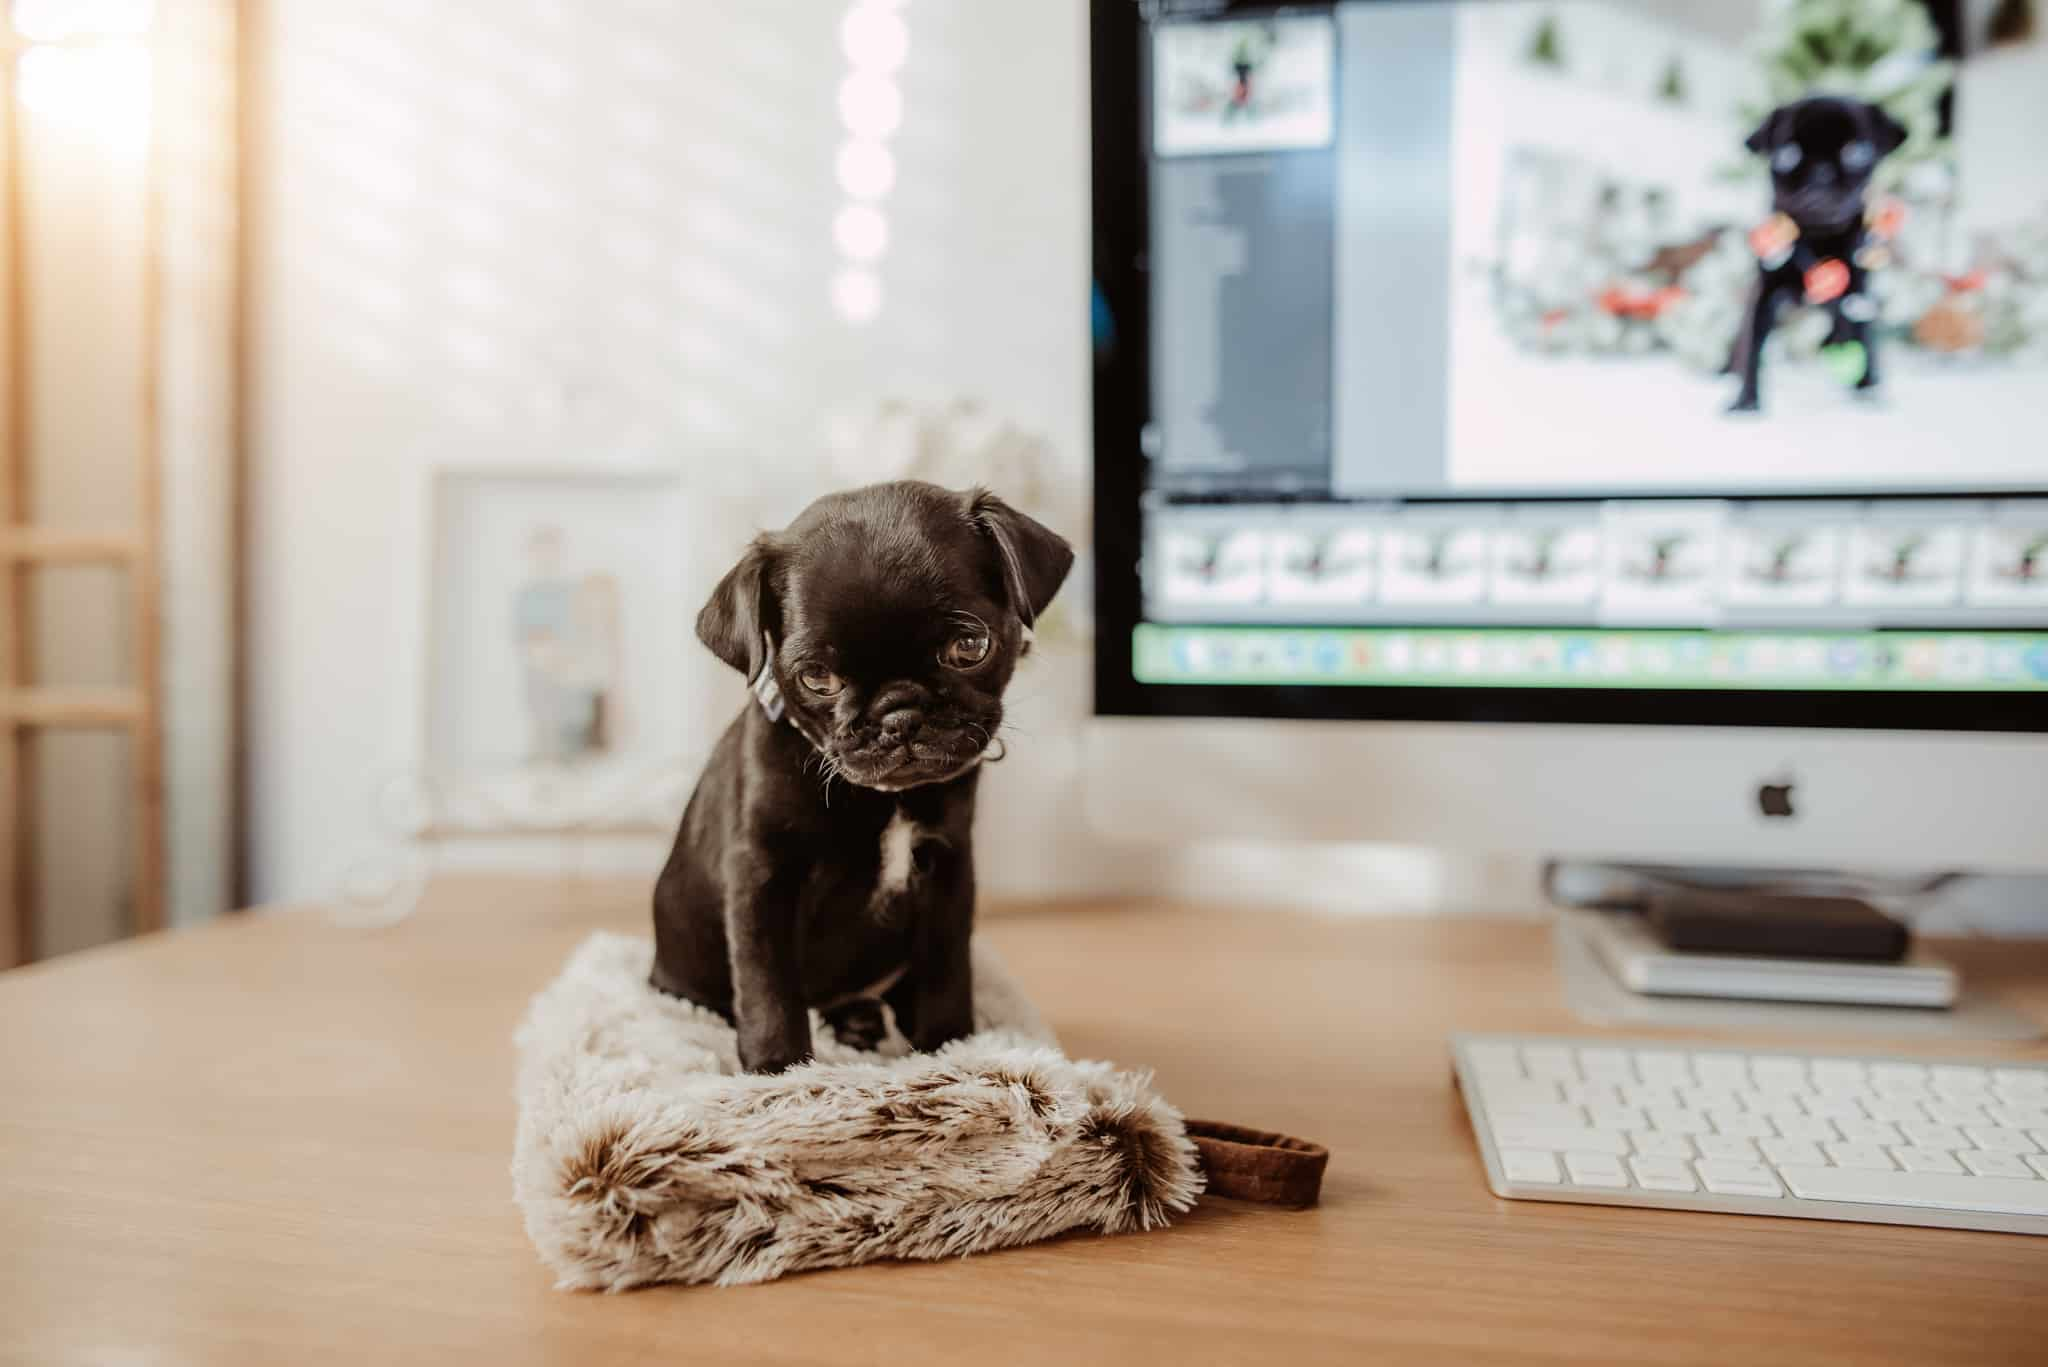 a beautiful animal, a puppy, is sitting on a desk.